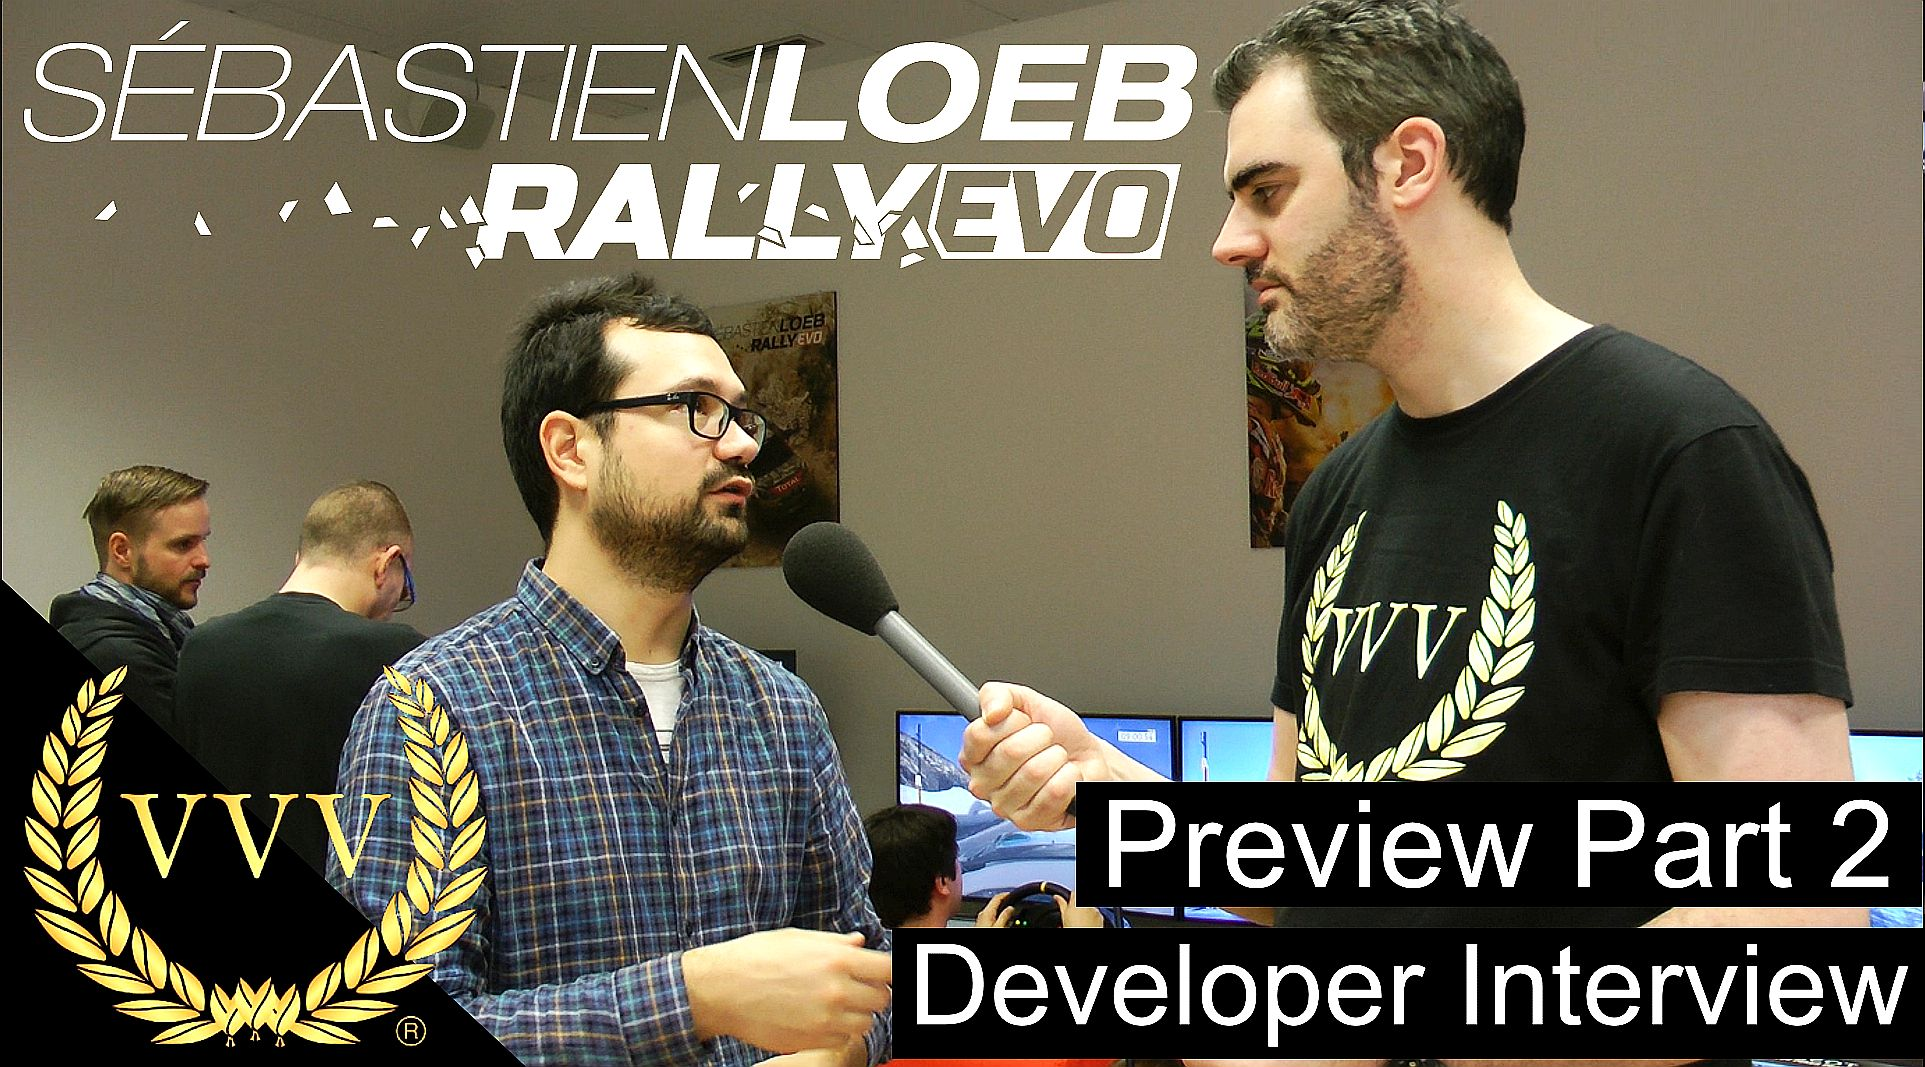 Sebastien Loeb Rally Evo: Preview part 2 Irvin Zonca Interview